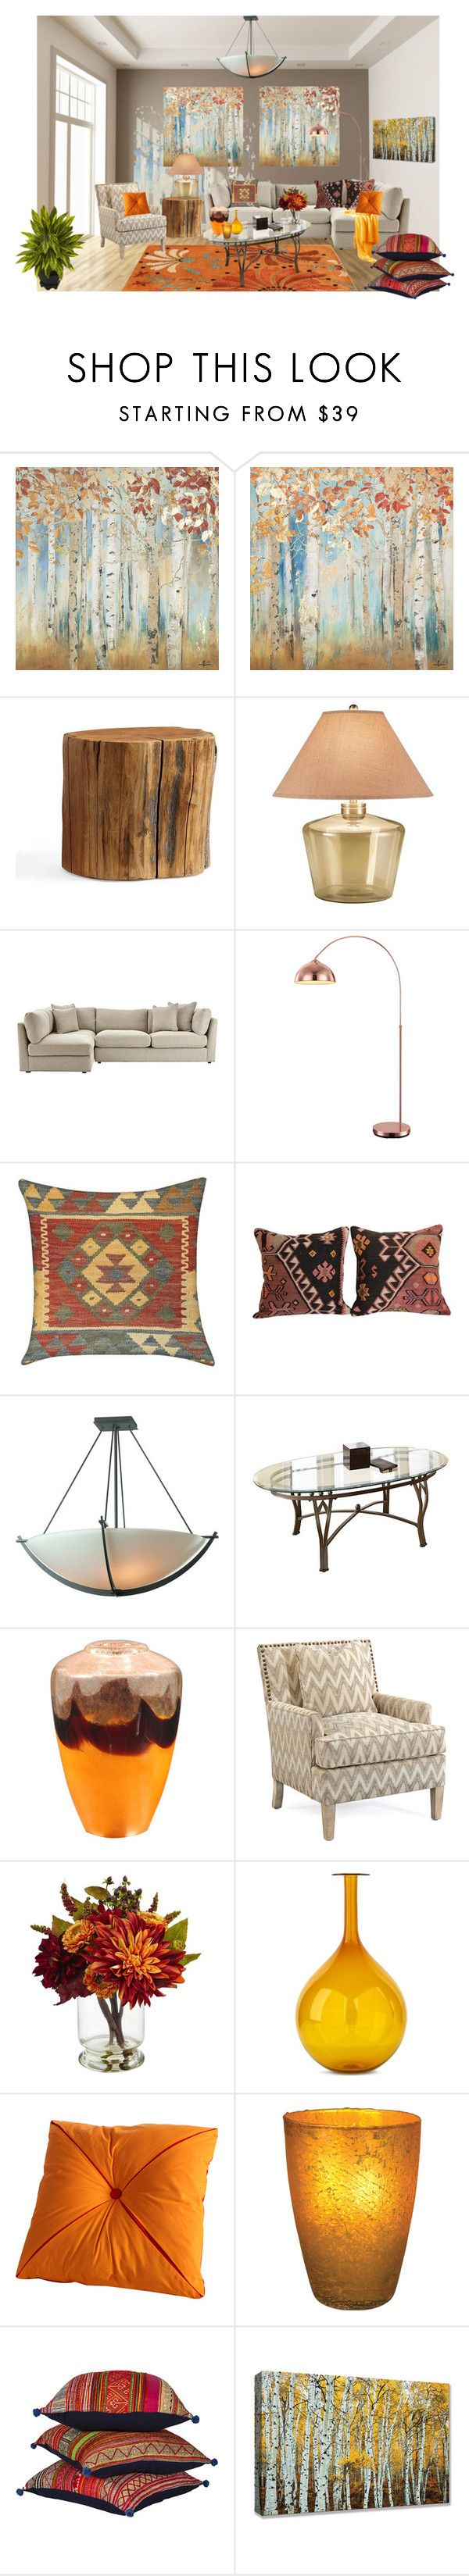 """Set C,Room #1"" by mountainalive ❤ liked on Polyvore featuring interior, interiors, interior design, home, home decor, interior decorating, Yosemite Home Décor, Pottery Barn, JAlexander and Home Decorators Collection"